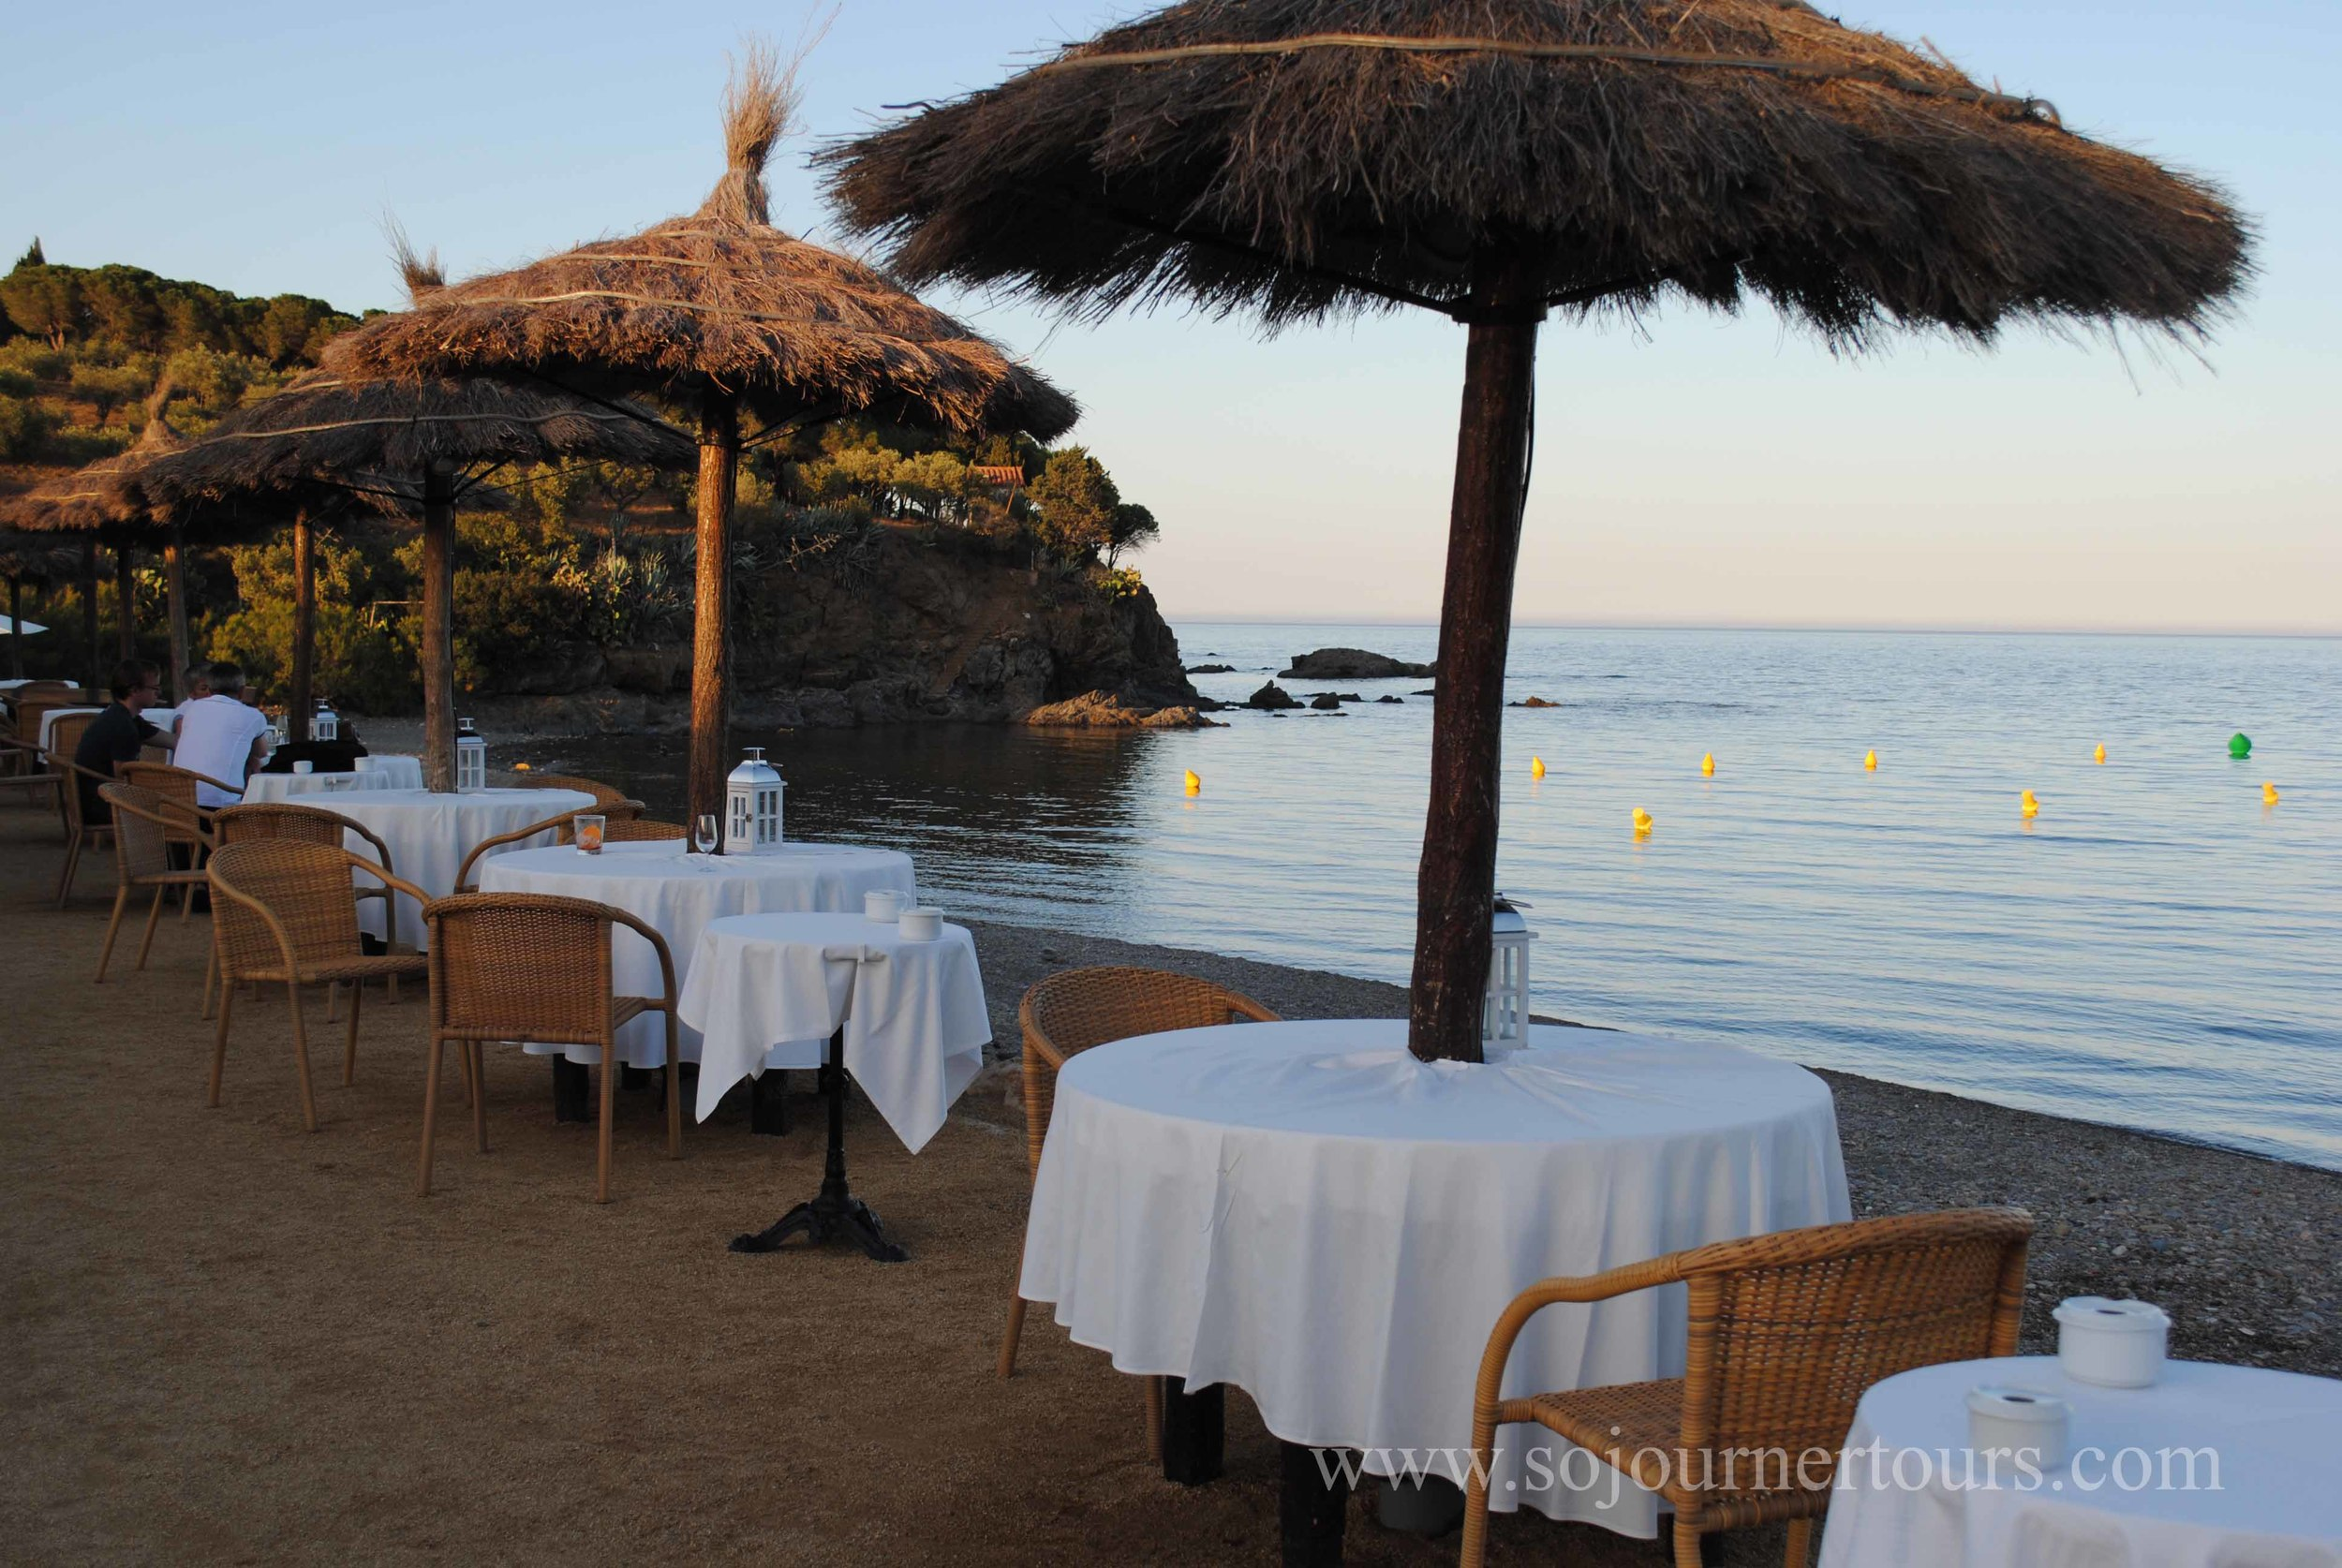 Tapas in a secluded cove on the way home to Collioure.